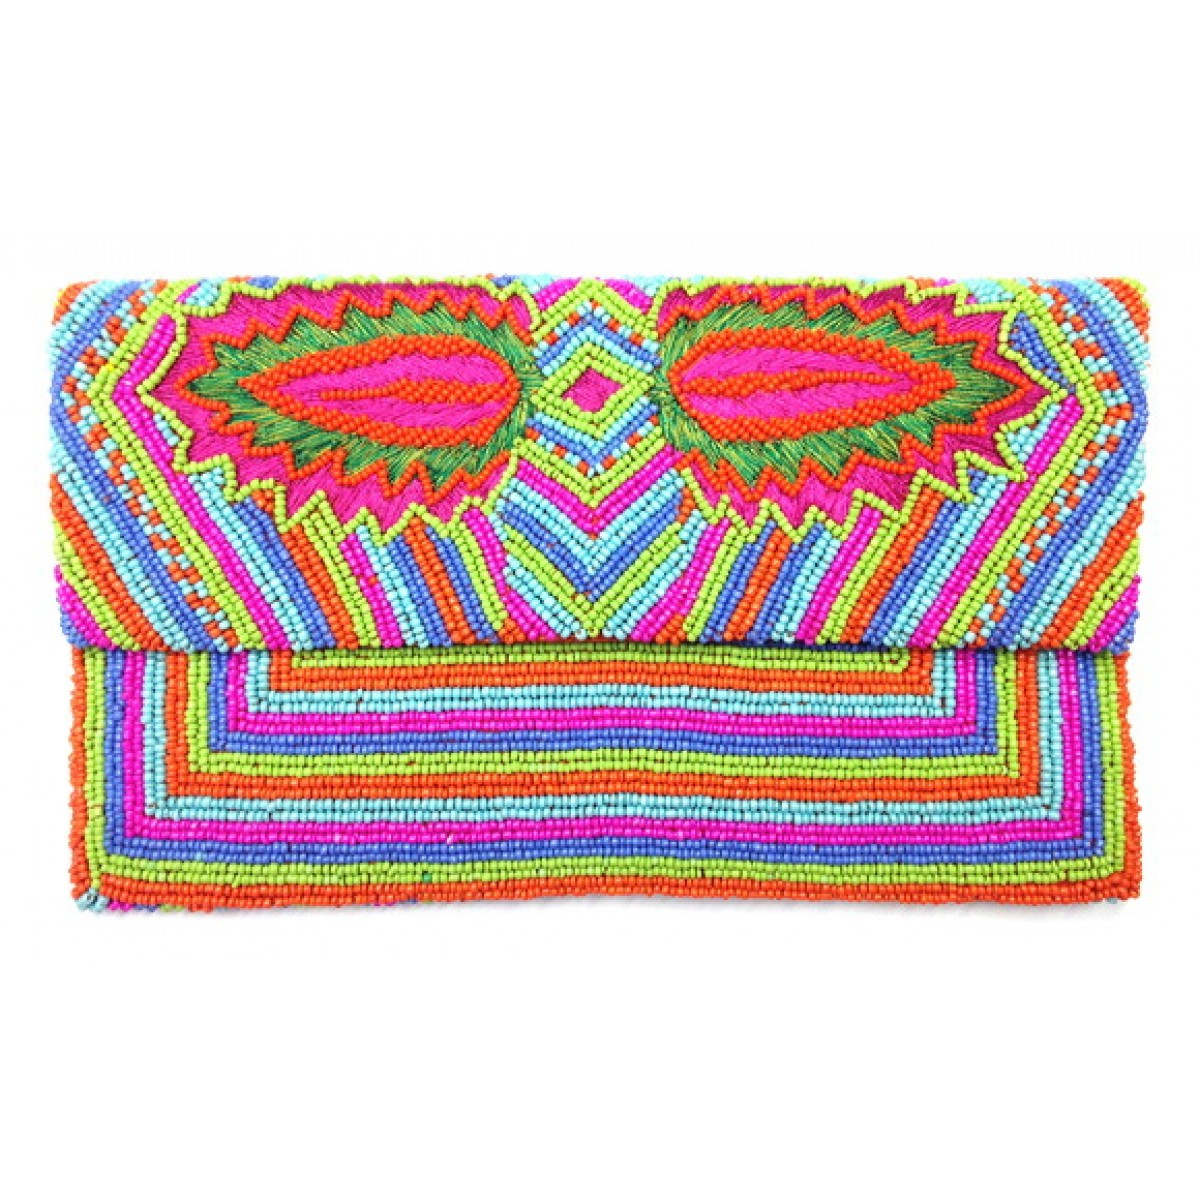 Beaded Leaf Envelope Clutch